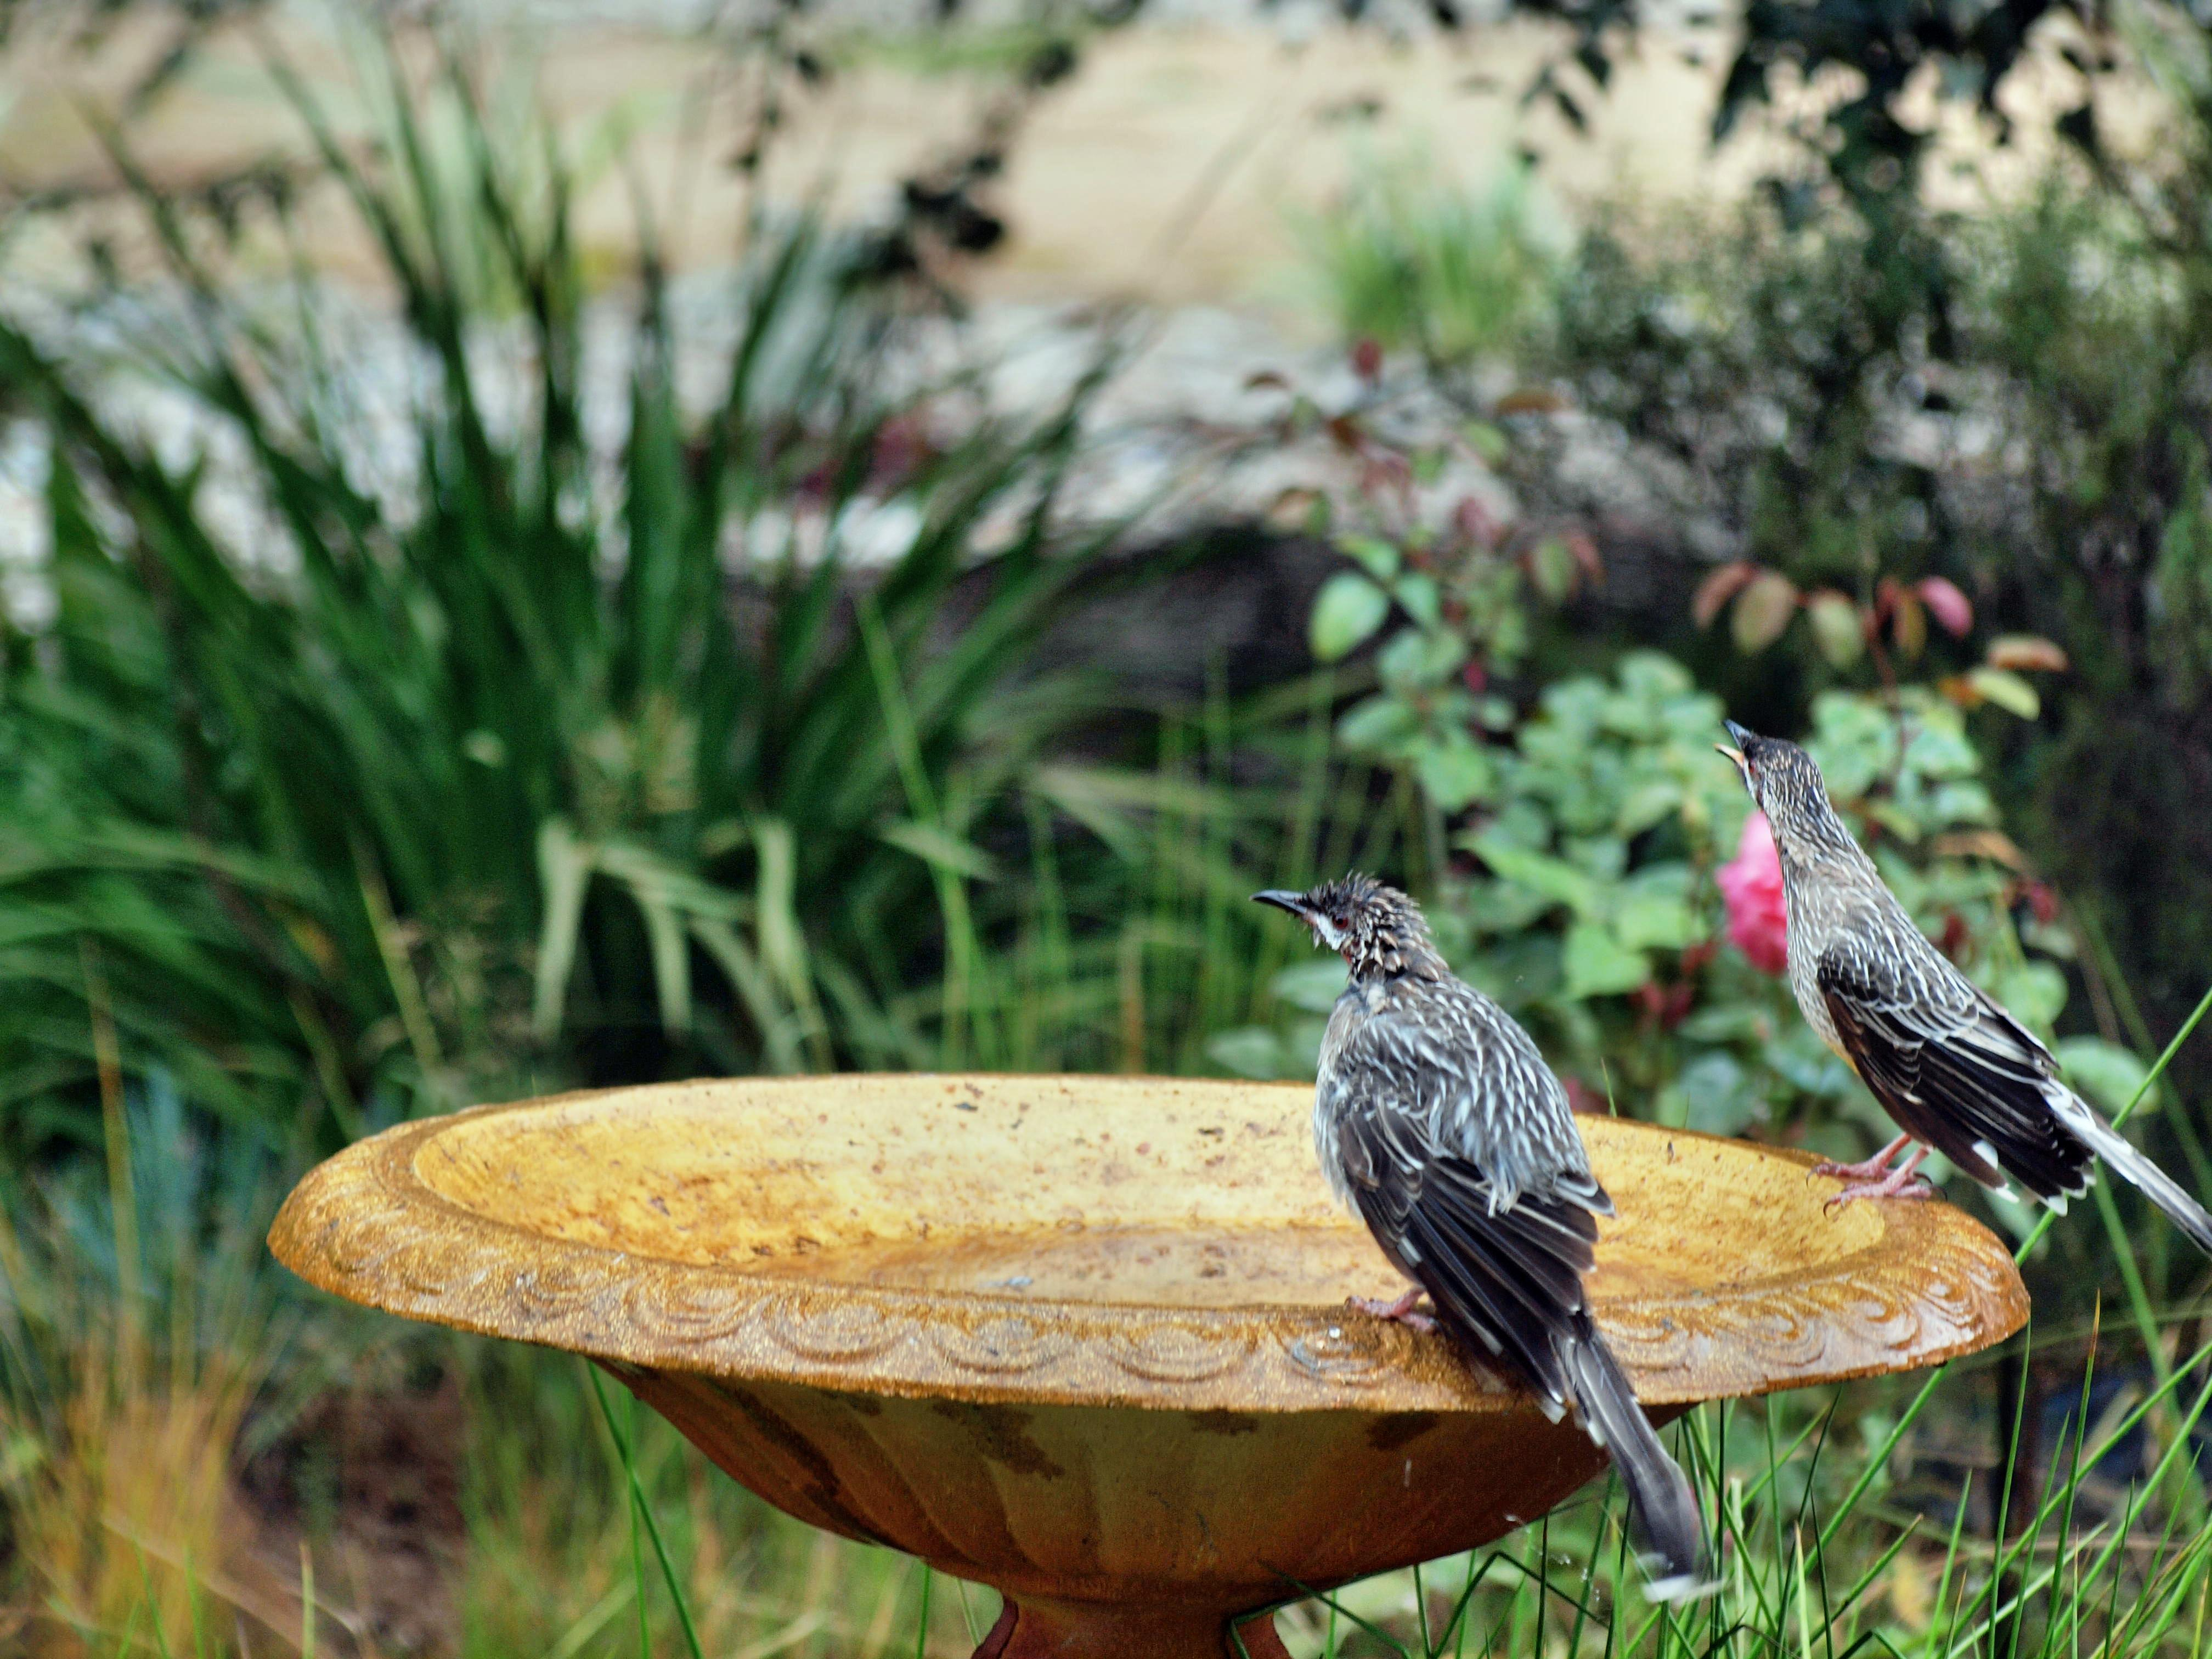 Bird-bath-17.jpeg